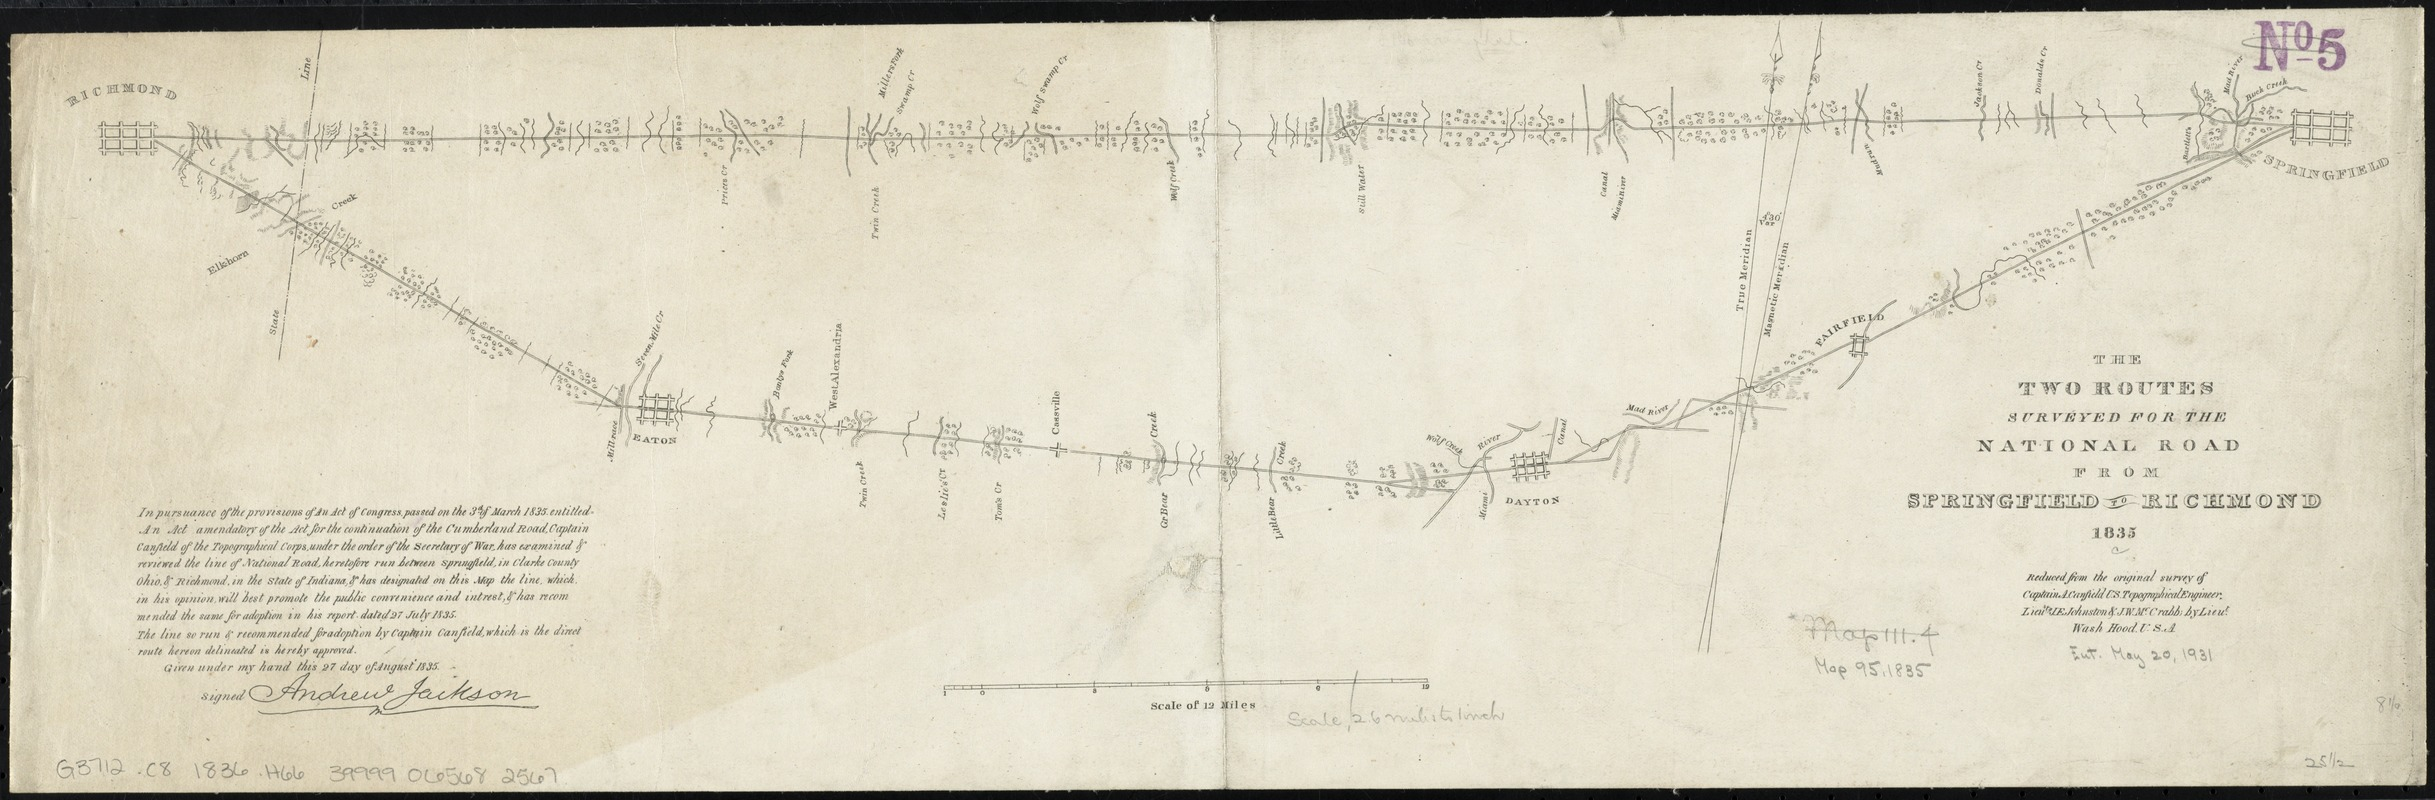 The two routes surveyed for the National Road from Springfield to Richmond, 1835